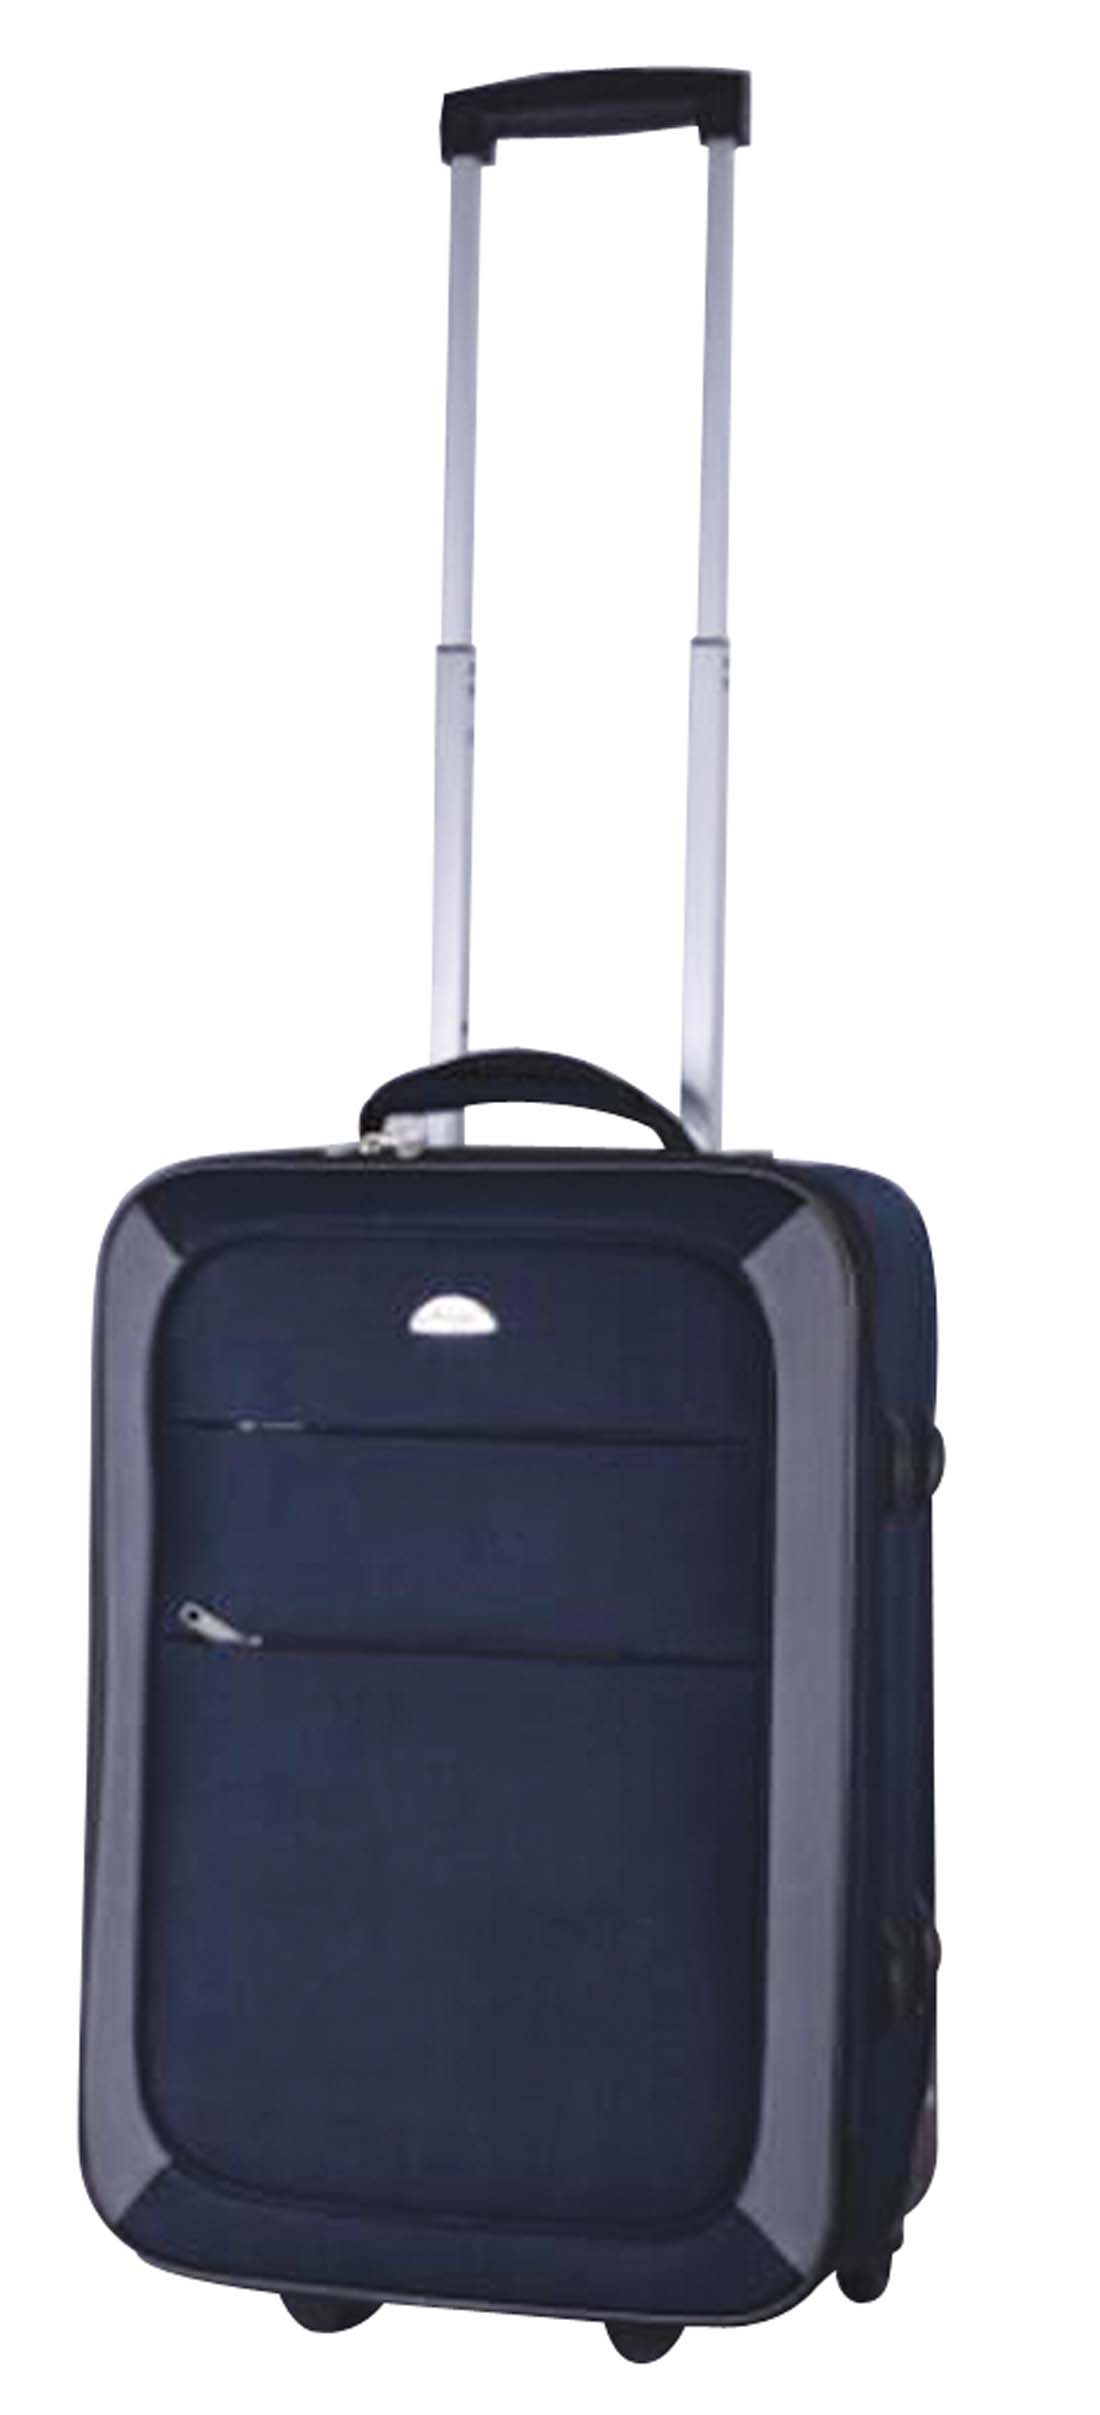 View SOFT LUGGAGE 20 INCH 2 WHEELS NAVY WITH GREY